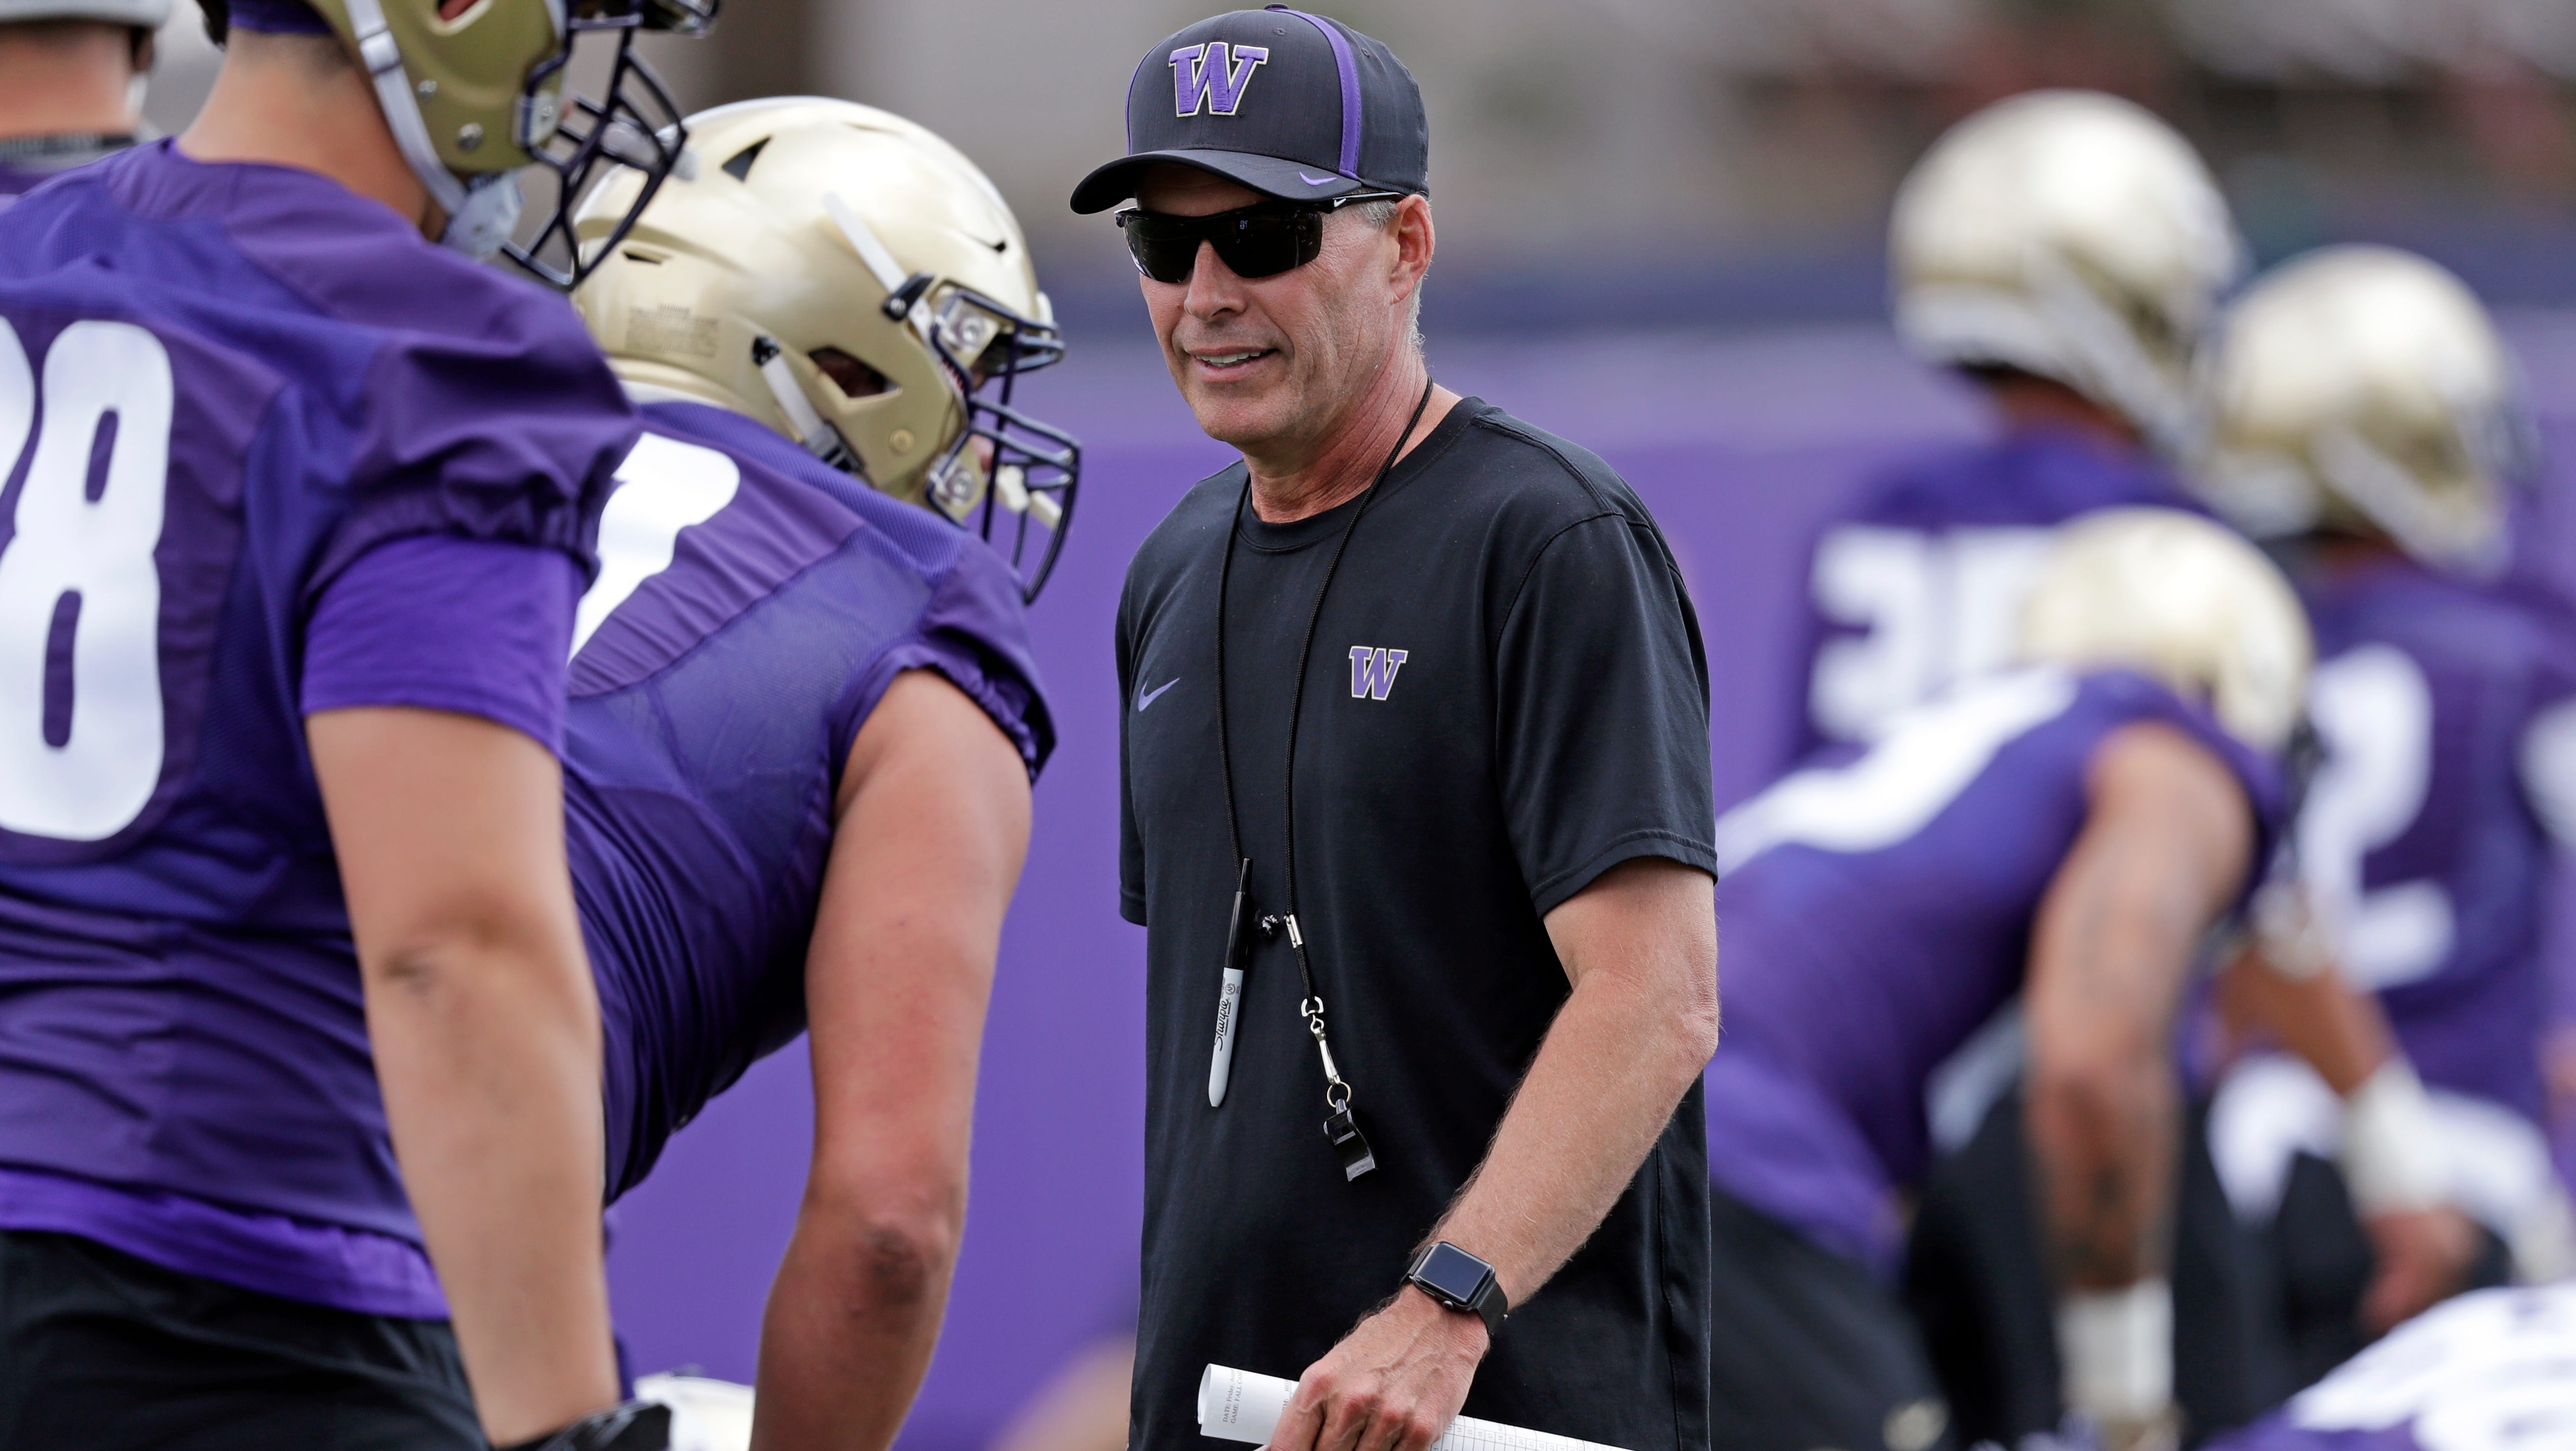 This Aug. 3, 2018, file photo shows Washington head coach Chris Petersen walking on the field during a team football practice in Seattle. Petersen's Huskies are the preseason favorites to win the Pac-12 with their roster full of NFL-caliber talent, but the entire league is looking for an improved season after going 1-8 in bowl games last winter.